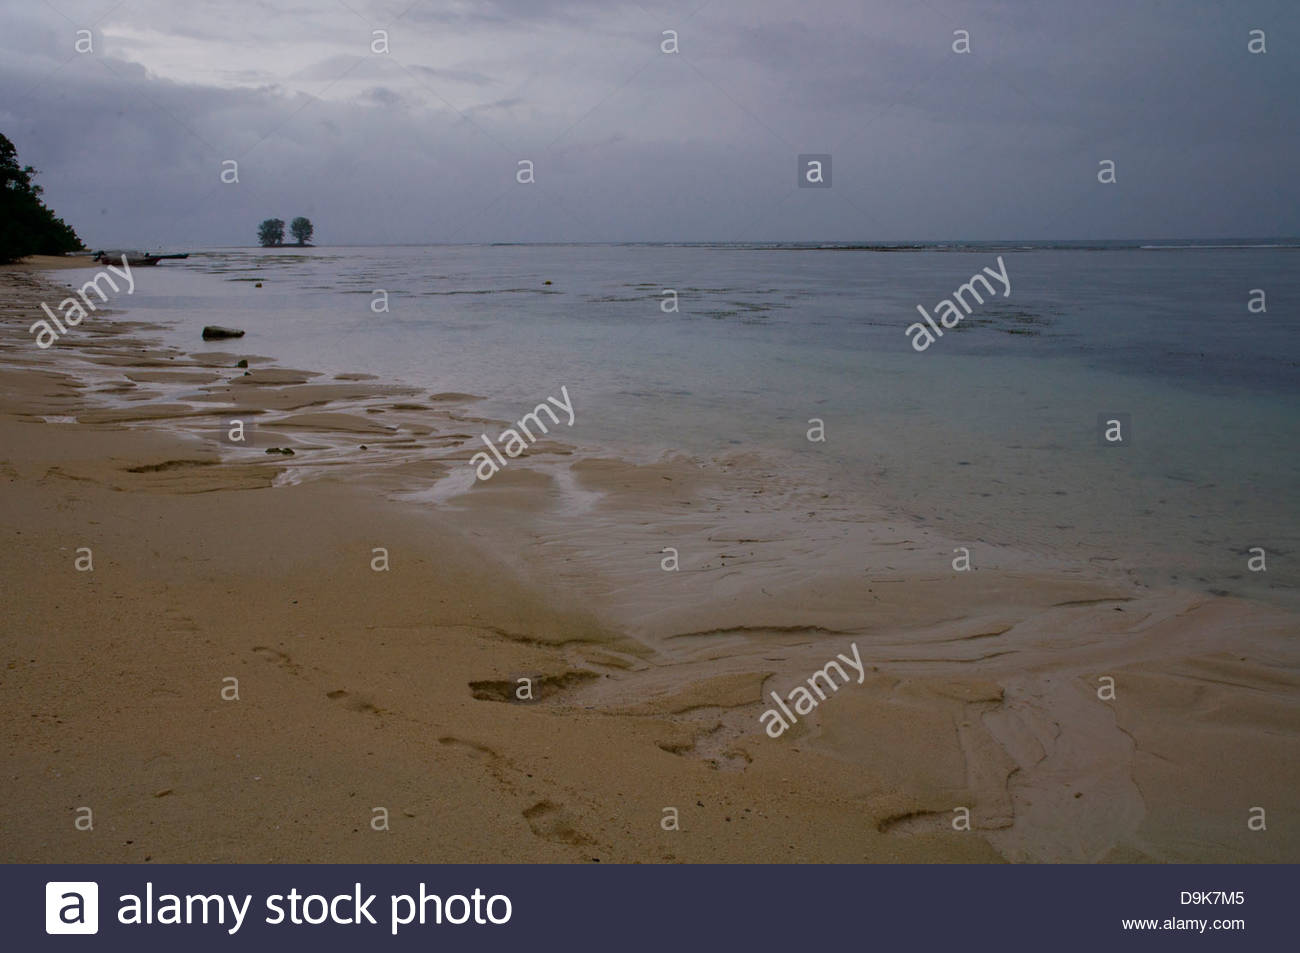 Low Tide on the beach during the storm, La Digue Island, Seychelles - Stock Image